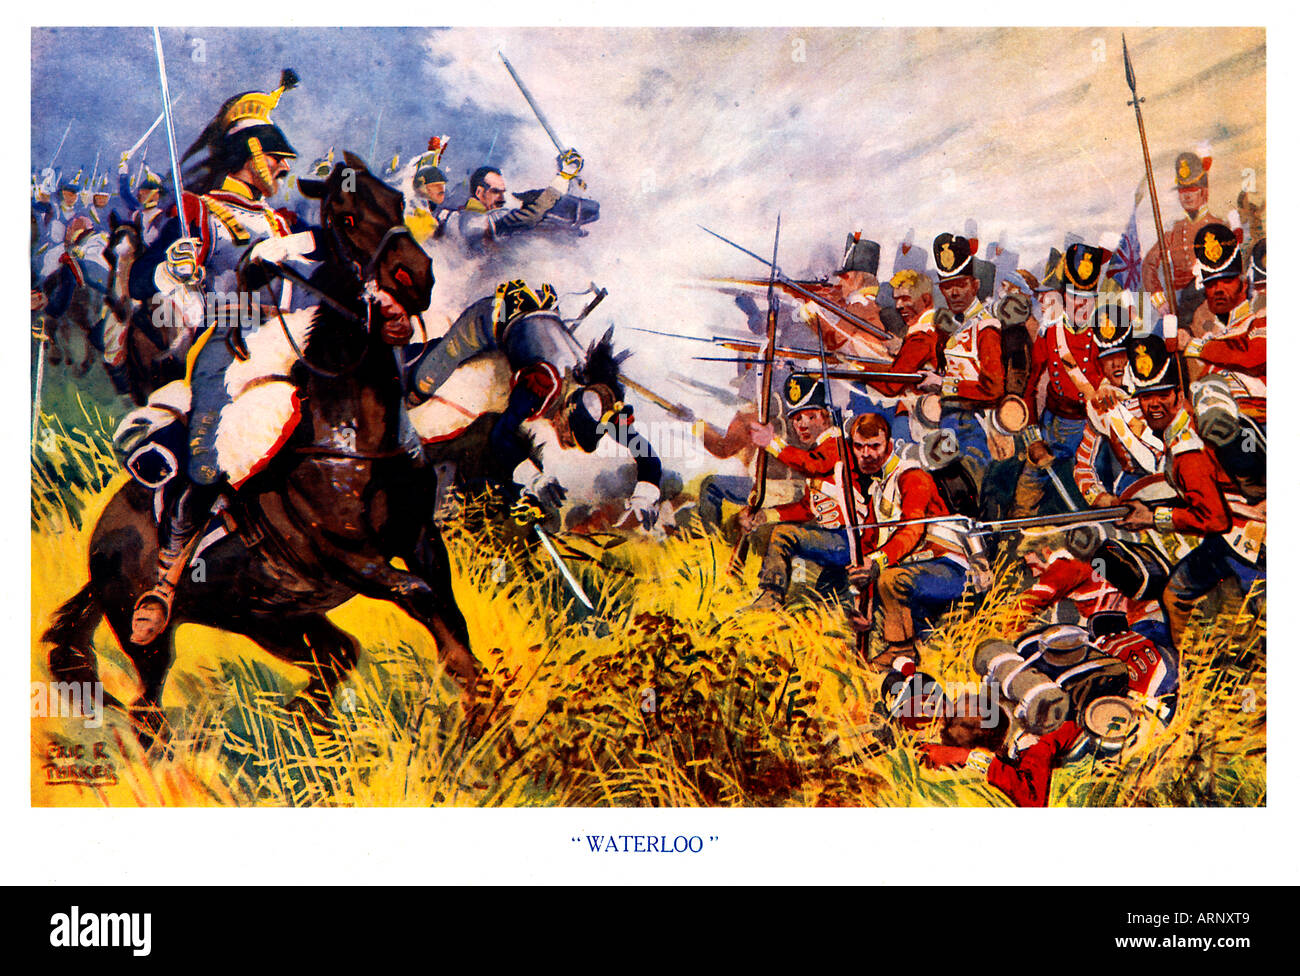 Waterloo 1920s boys magazine illustration of a British square standing firm against the French cavalry - Stock Image